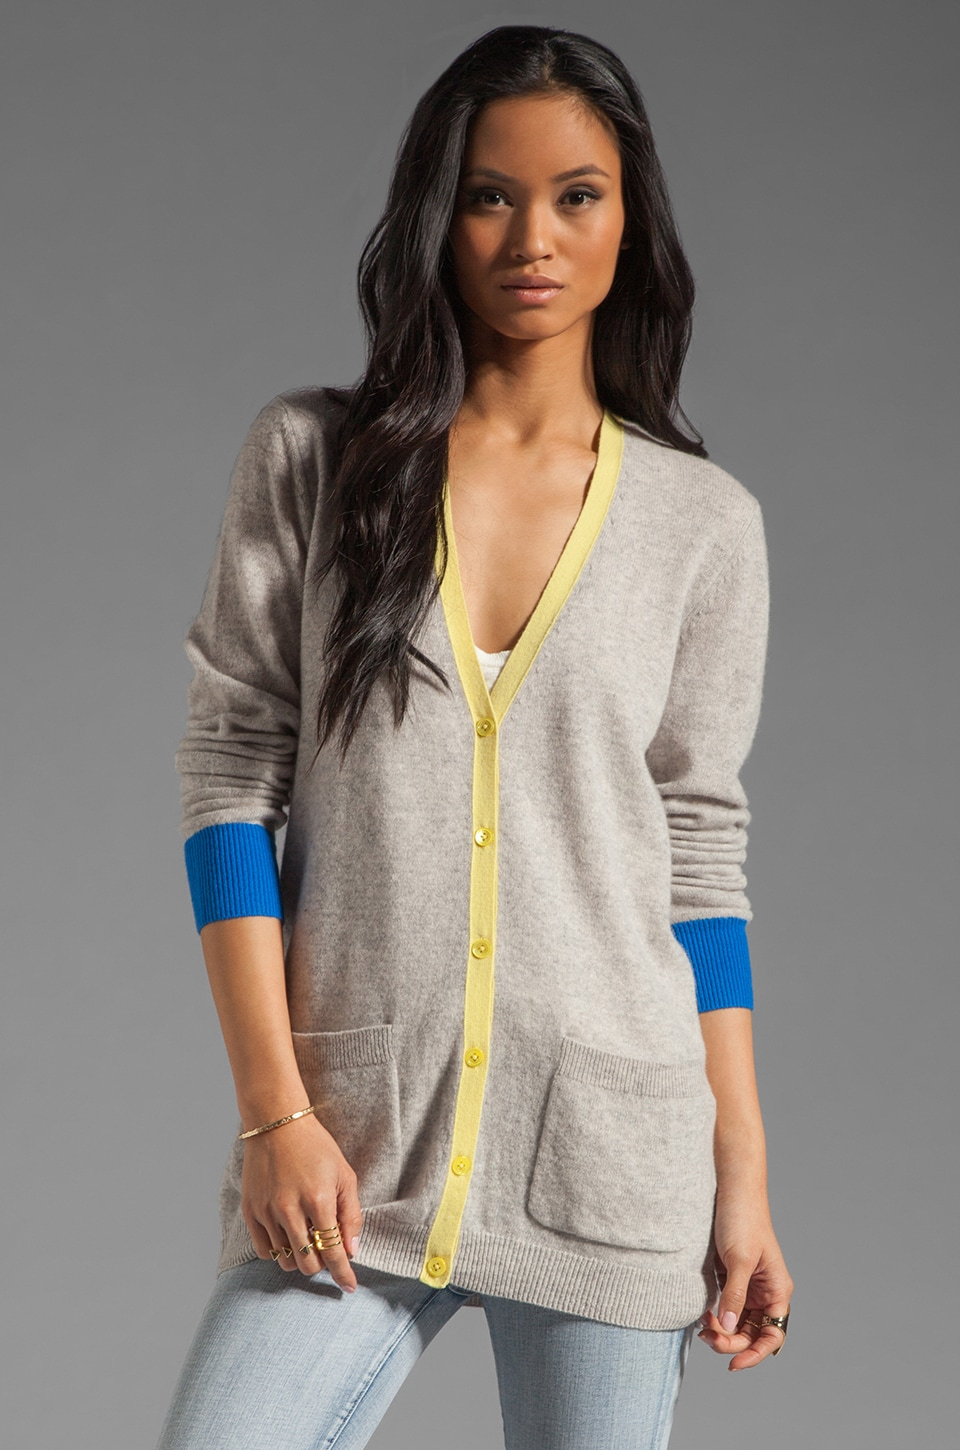 Equipment Ella Colorblock Cardigan in Light Heather Grey